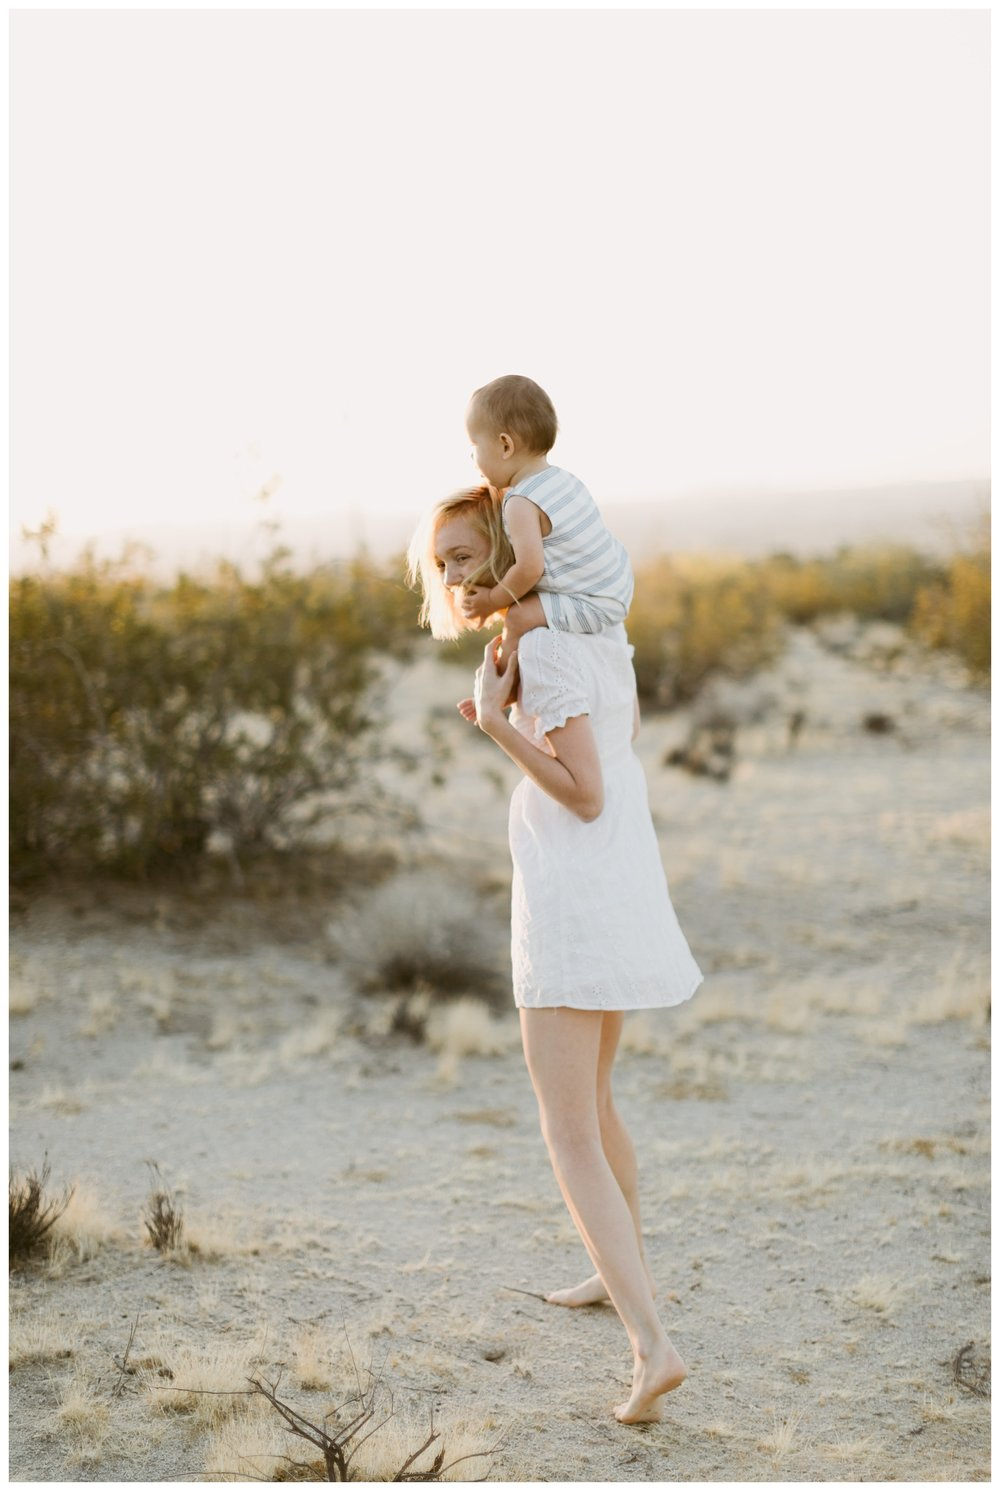 rhi-motherhood-joshua-tree (65 of 113).jpg